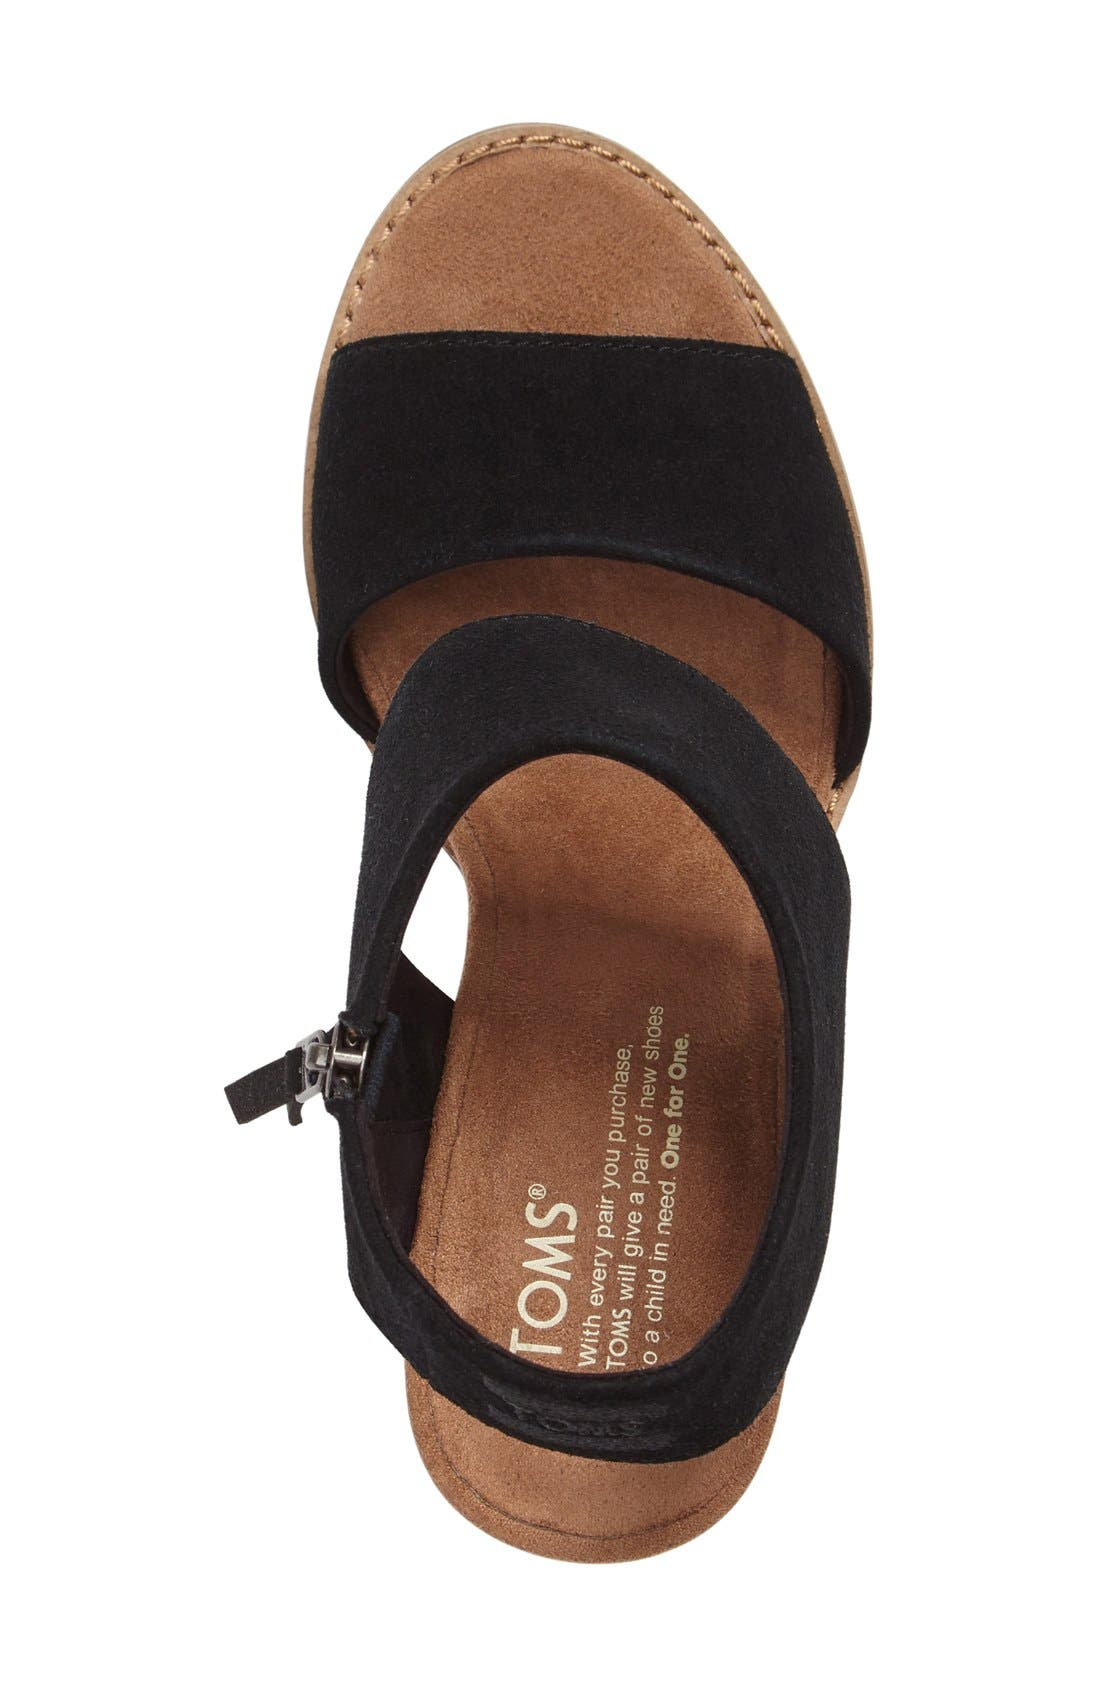 Majorca Sandal,                             Alternate thumbnail 6, color,                             BLACK